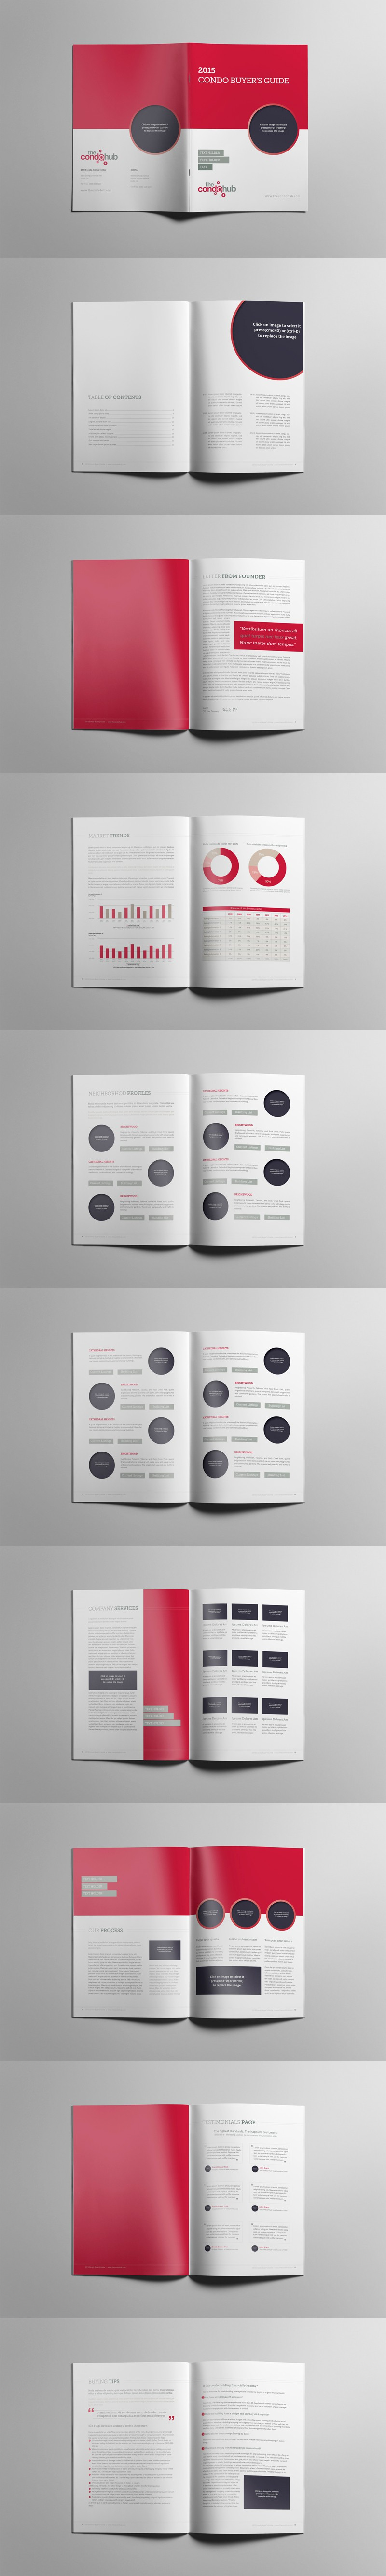 Create an Indesign template for a condo buyer guide